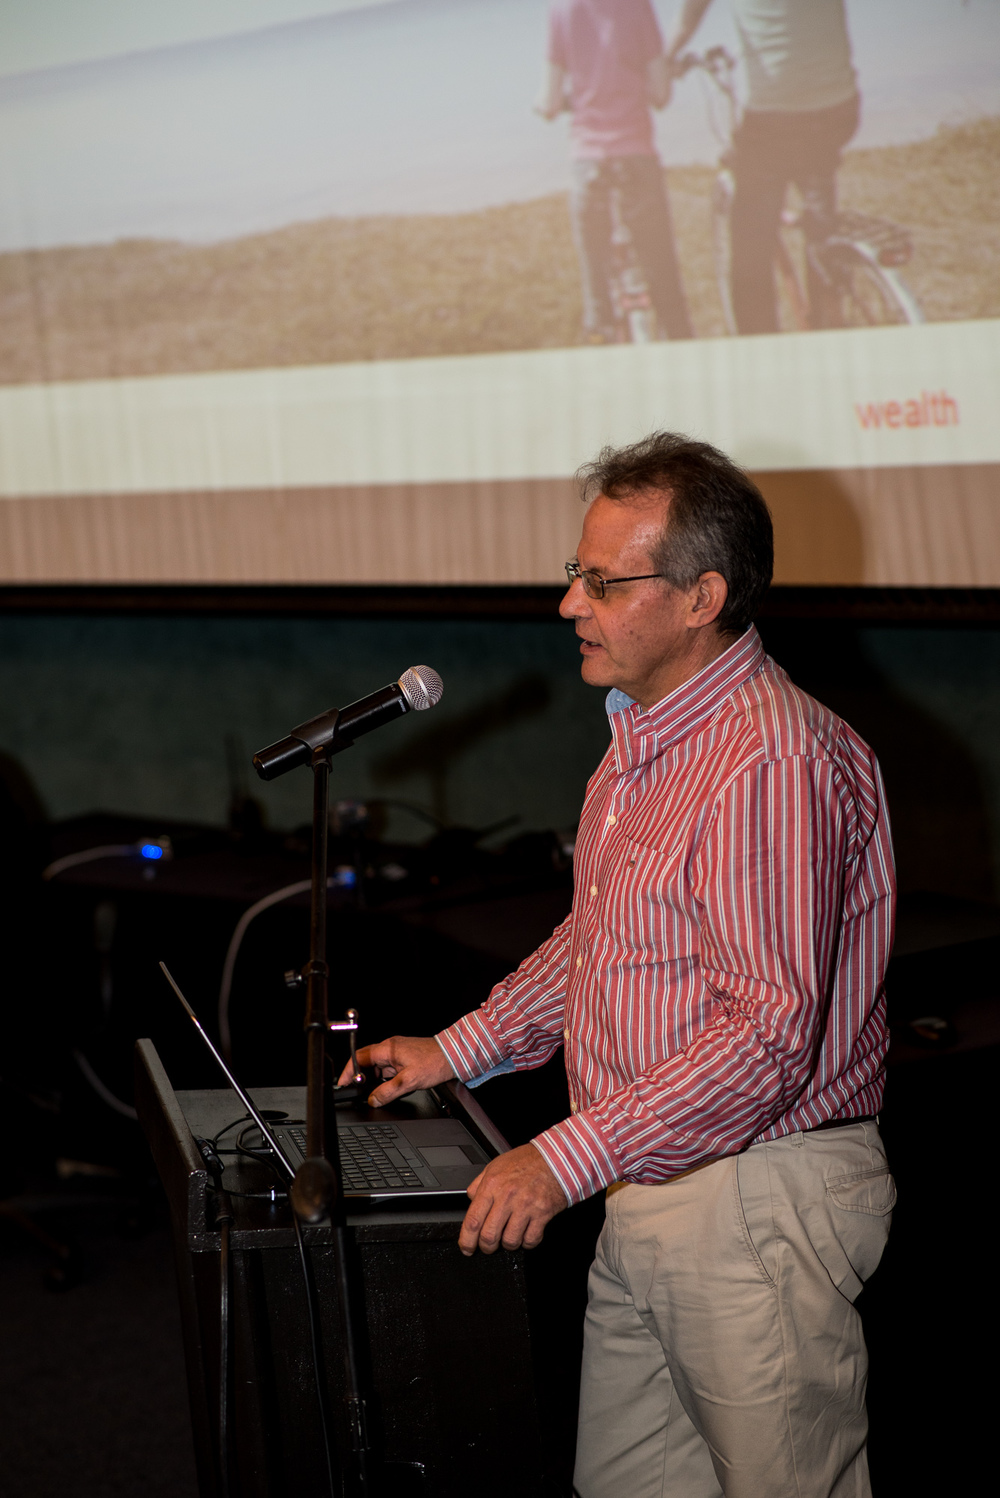 JHB2015-RoadShow (45 of 212).jpg